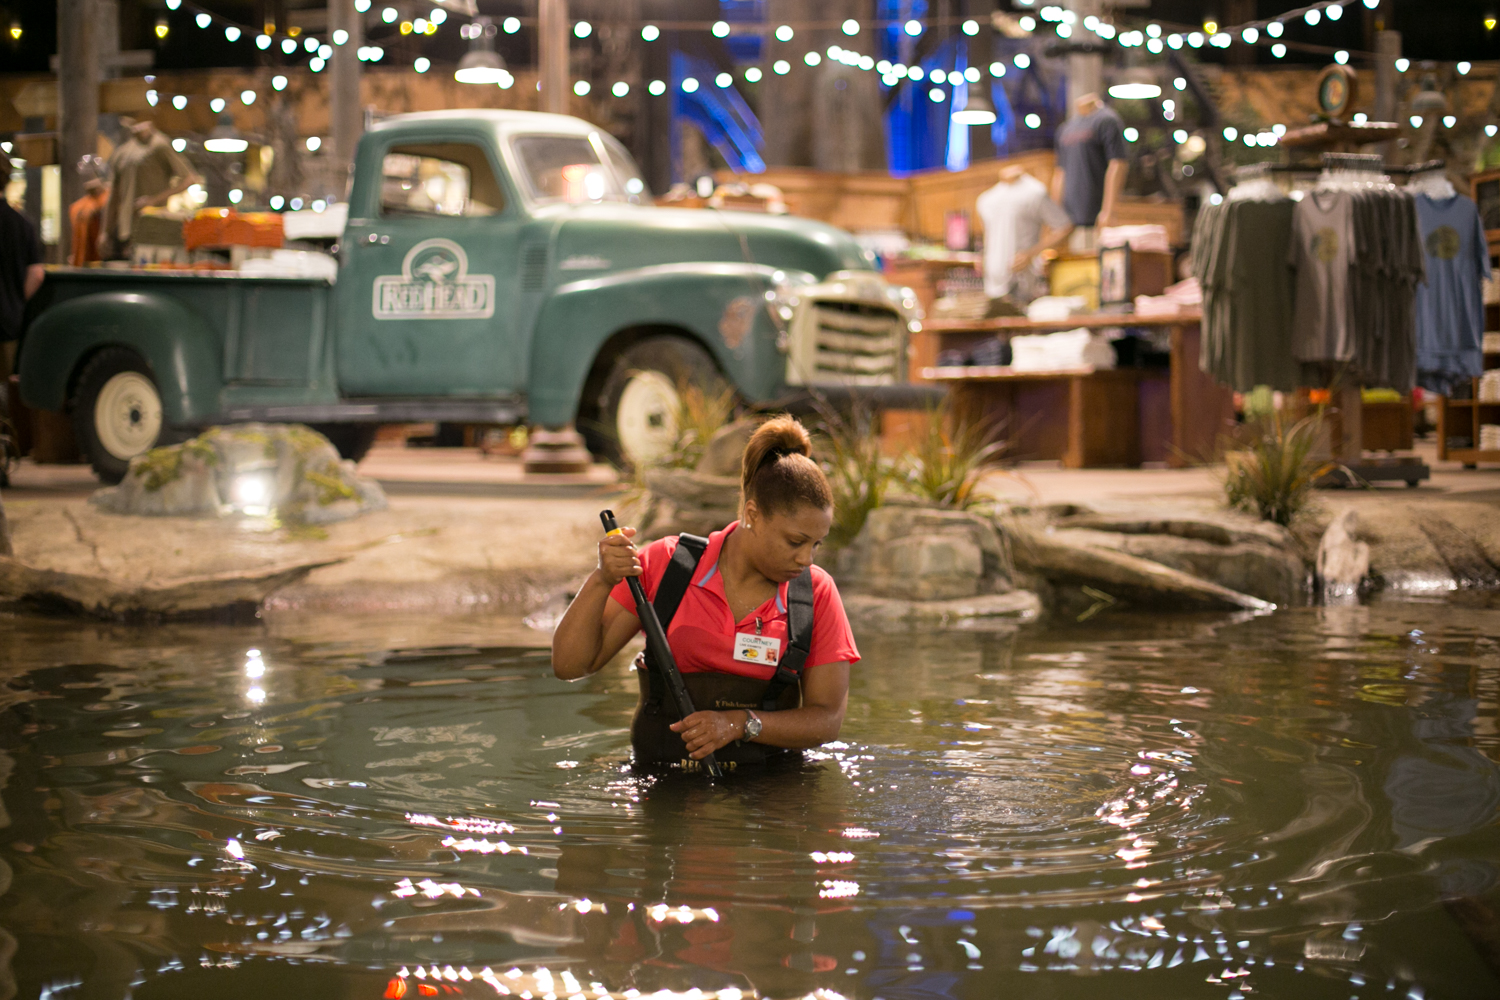 Courtney gives the rainbow trout pond a scrubbing at the new Bass Pro Shop in Memphis. Next up could be the 84,000-gallon alligator habitat.